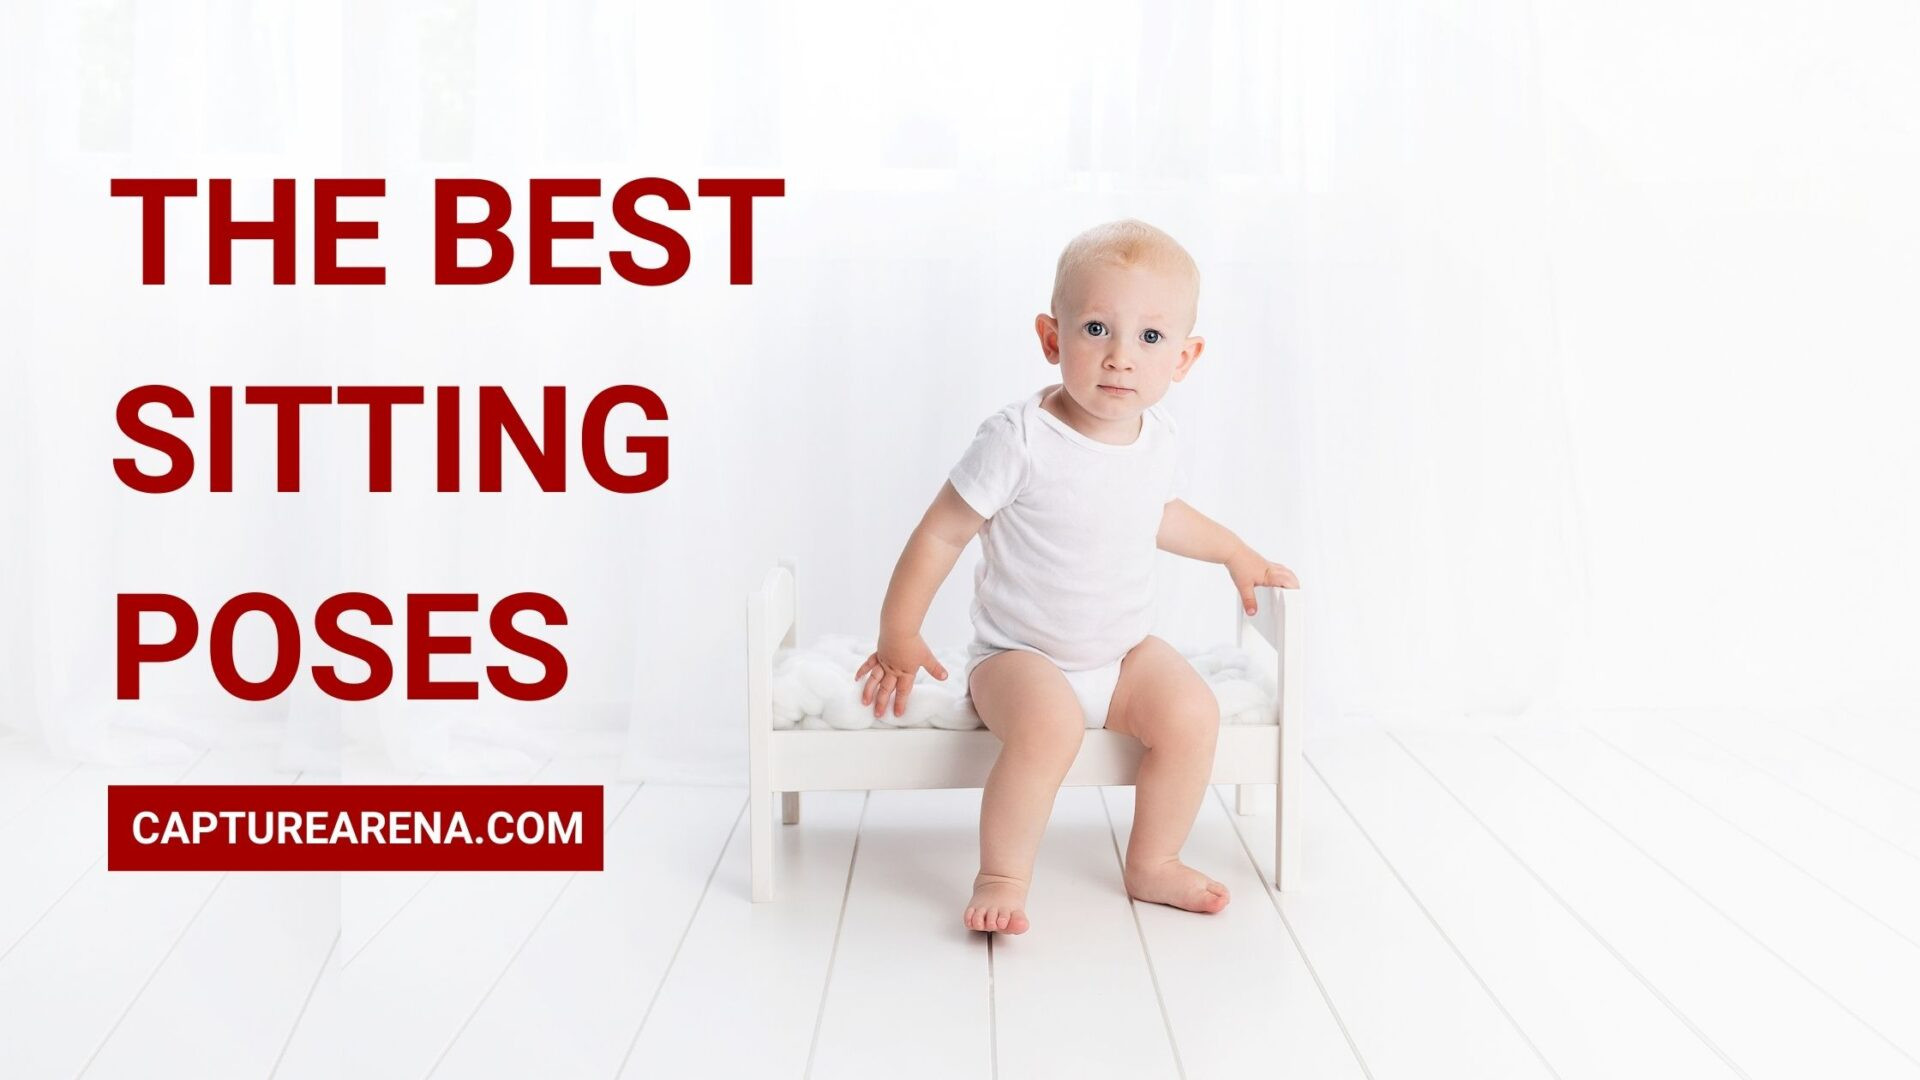 The Best Sitting Poses